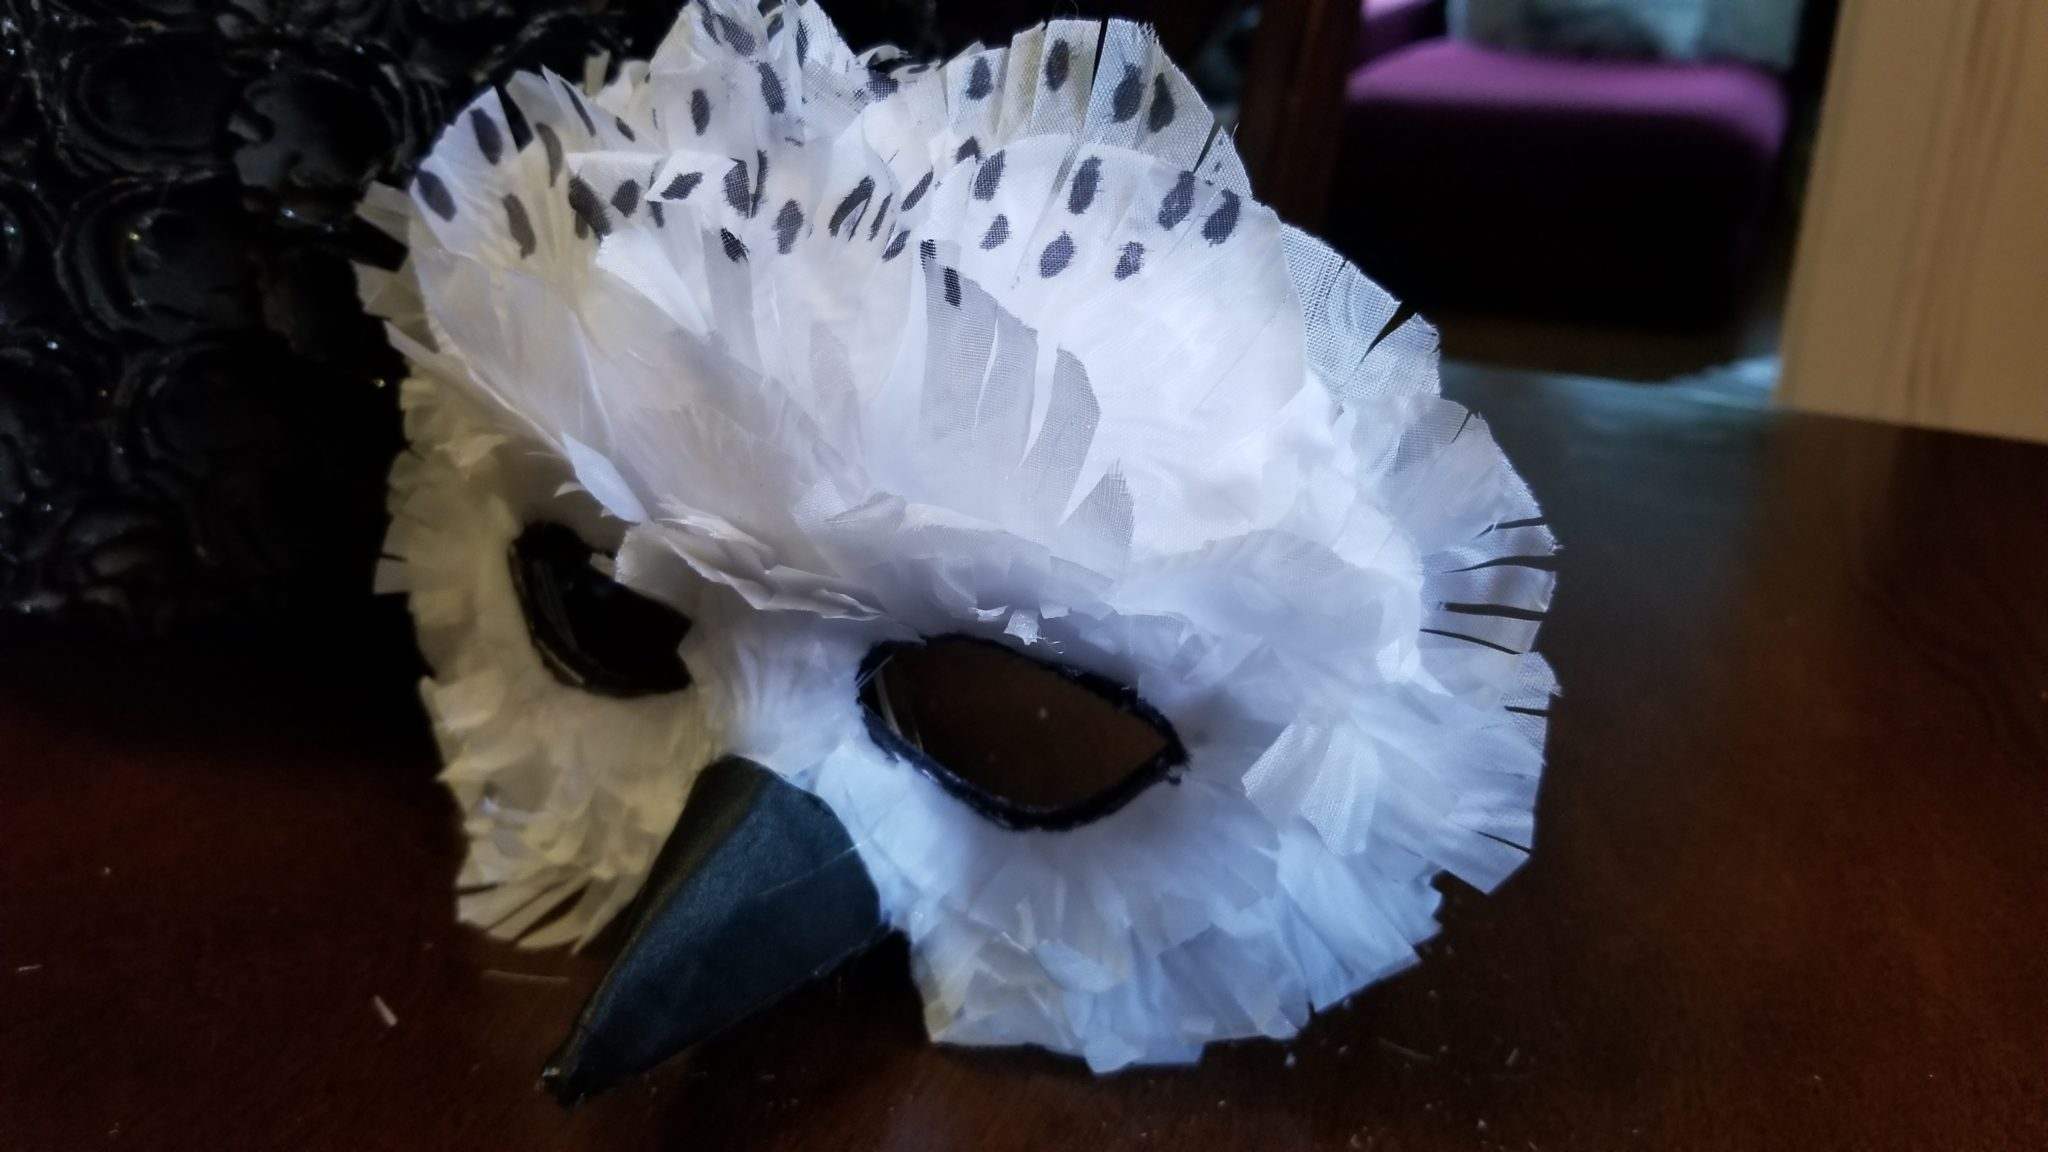 b9c4595c99 Marion Sprague made a snowy owl mask using silk rose petals, along with a  little cardboard, tape and glue, for her 2018 Halloween costume: the owl  Hedwig ...